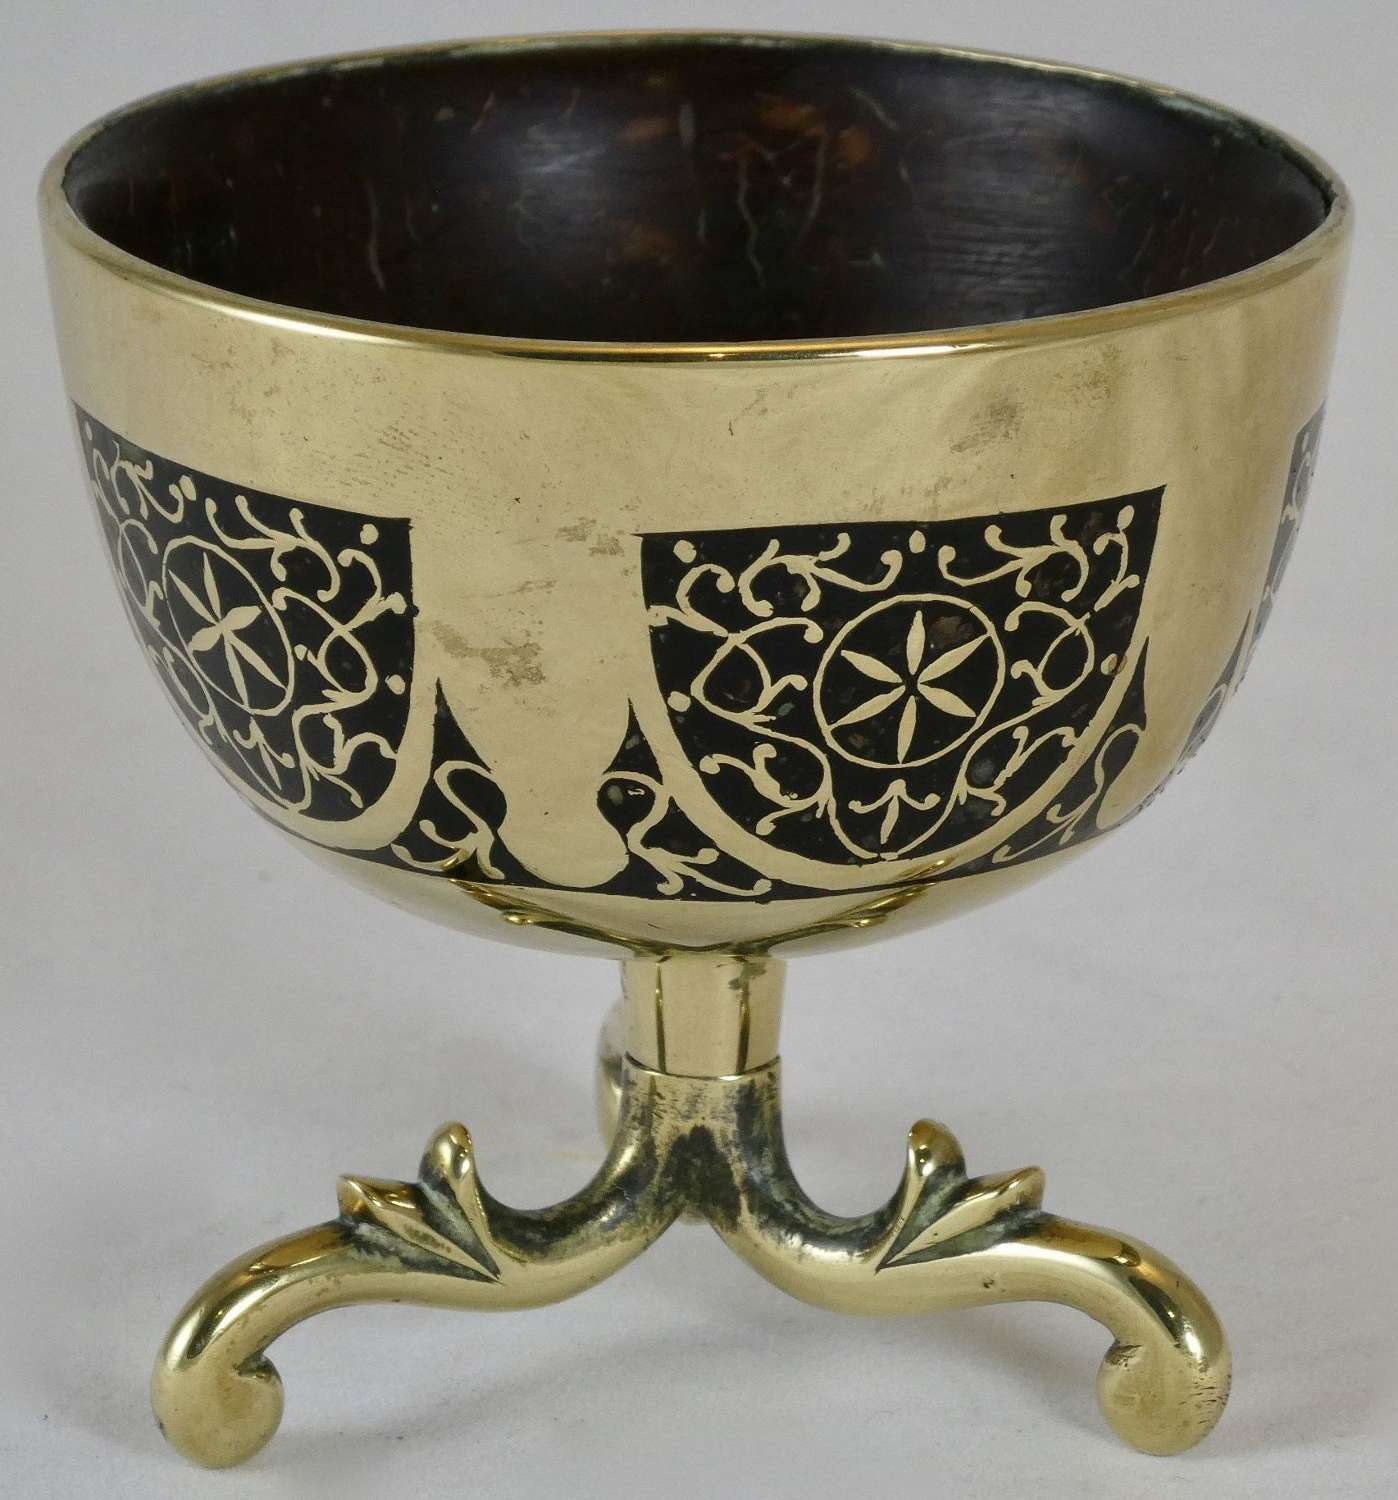 19th Century Brass Inlaid Bowl